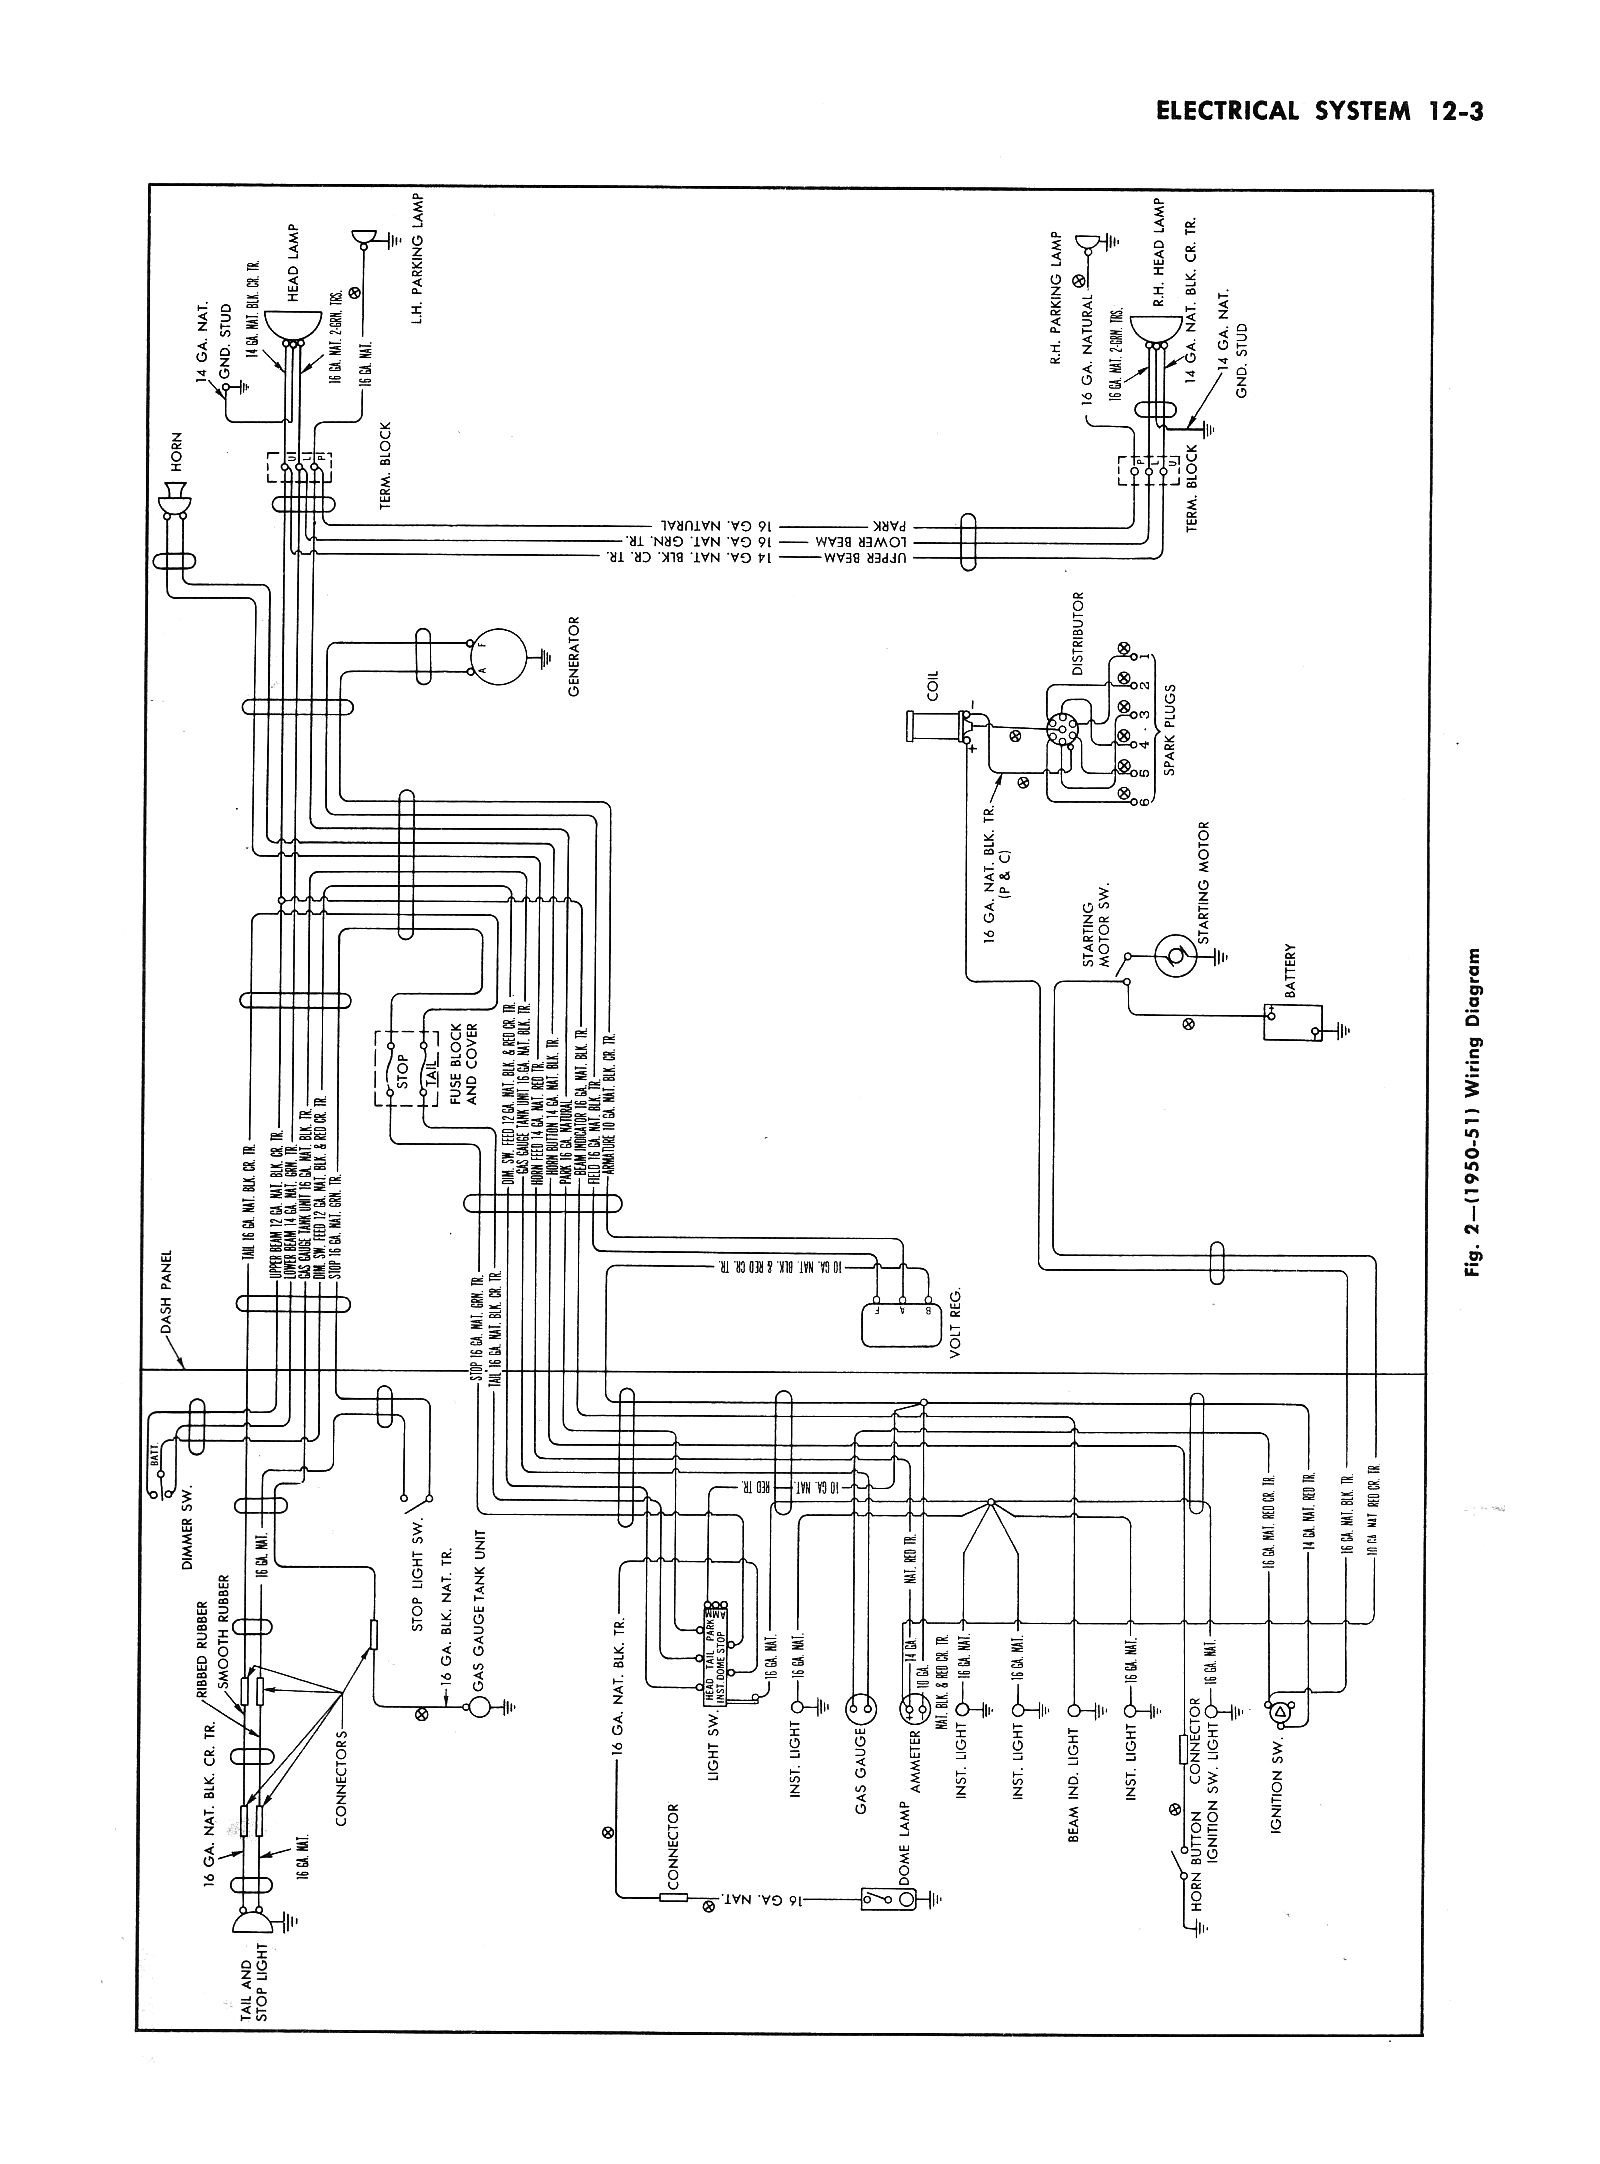 1947 Chevrolet Truck 1985 Chevy Pickup Wiring Diagrams Simple White Led Night Light Ledandlightcircuit Circuit Diagram Rh Oldcarmanualproject Com